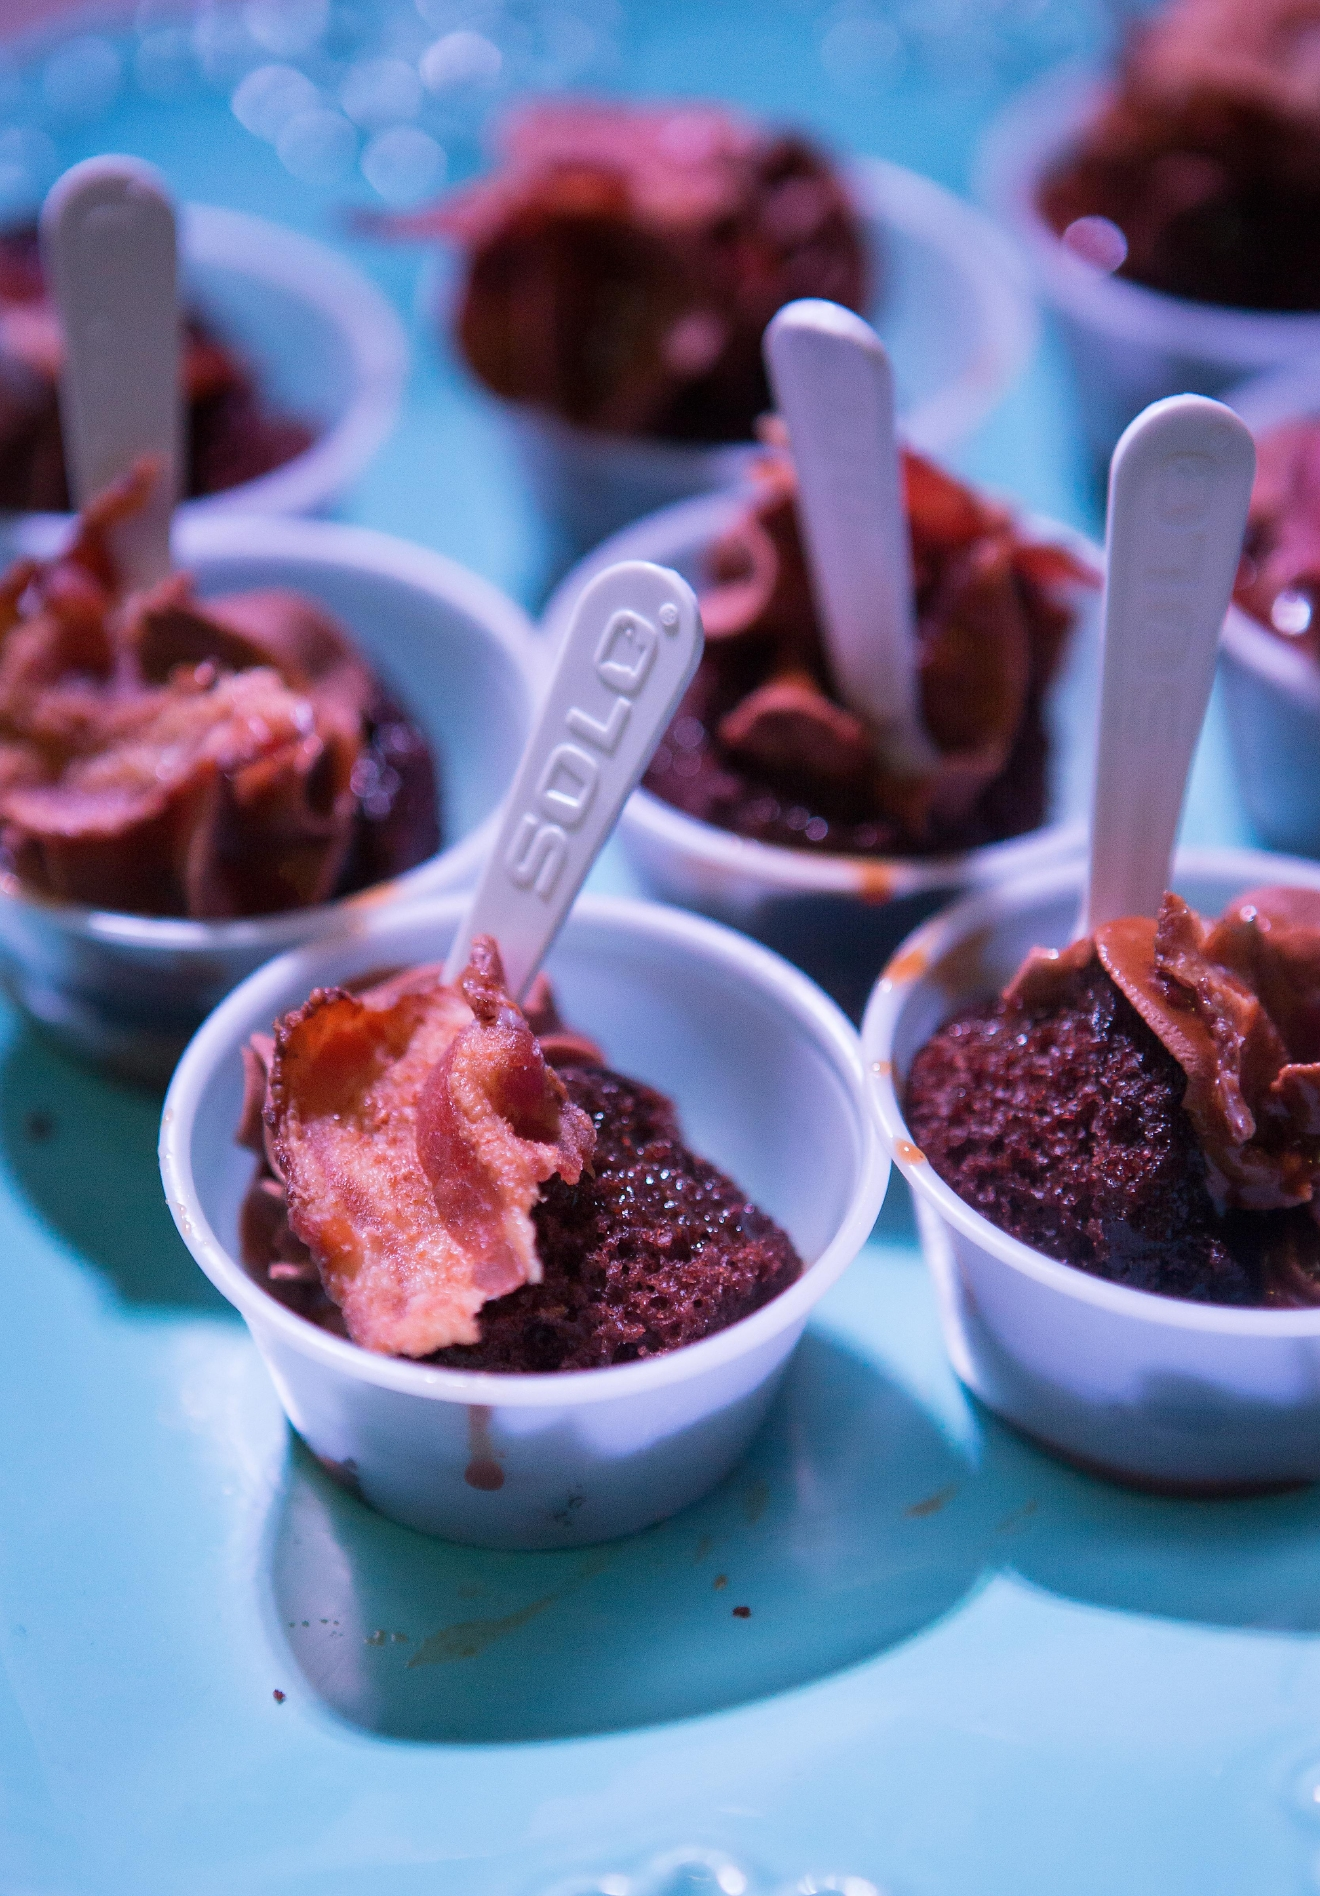 Hollywood Baked Goods' deconstructed chocolate cupcakes infused with bourbon, bacon, and bourbon-caramel glaze, at the Bourbon & Bacon Fest in SODO. (Sy Bean / Seattle Refined)